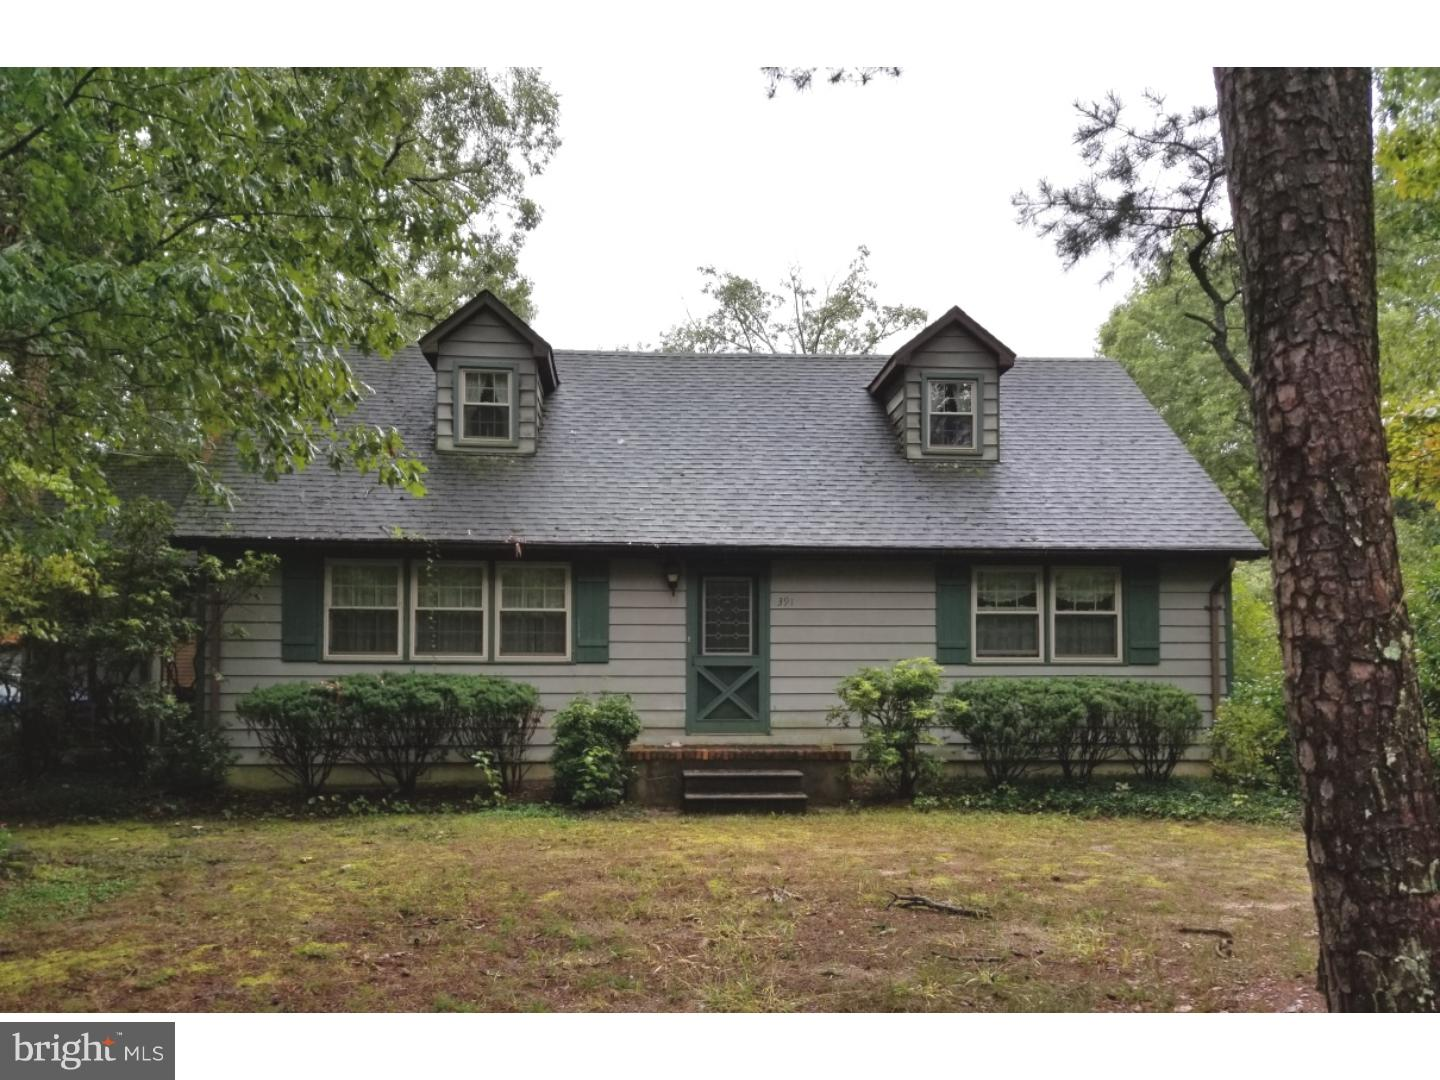 391 OLD RIVER ROAD, MAYS LANDING, NJ 08330